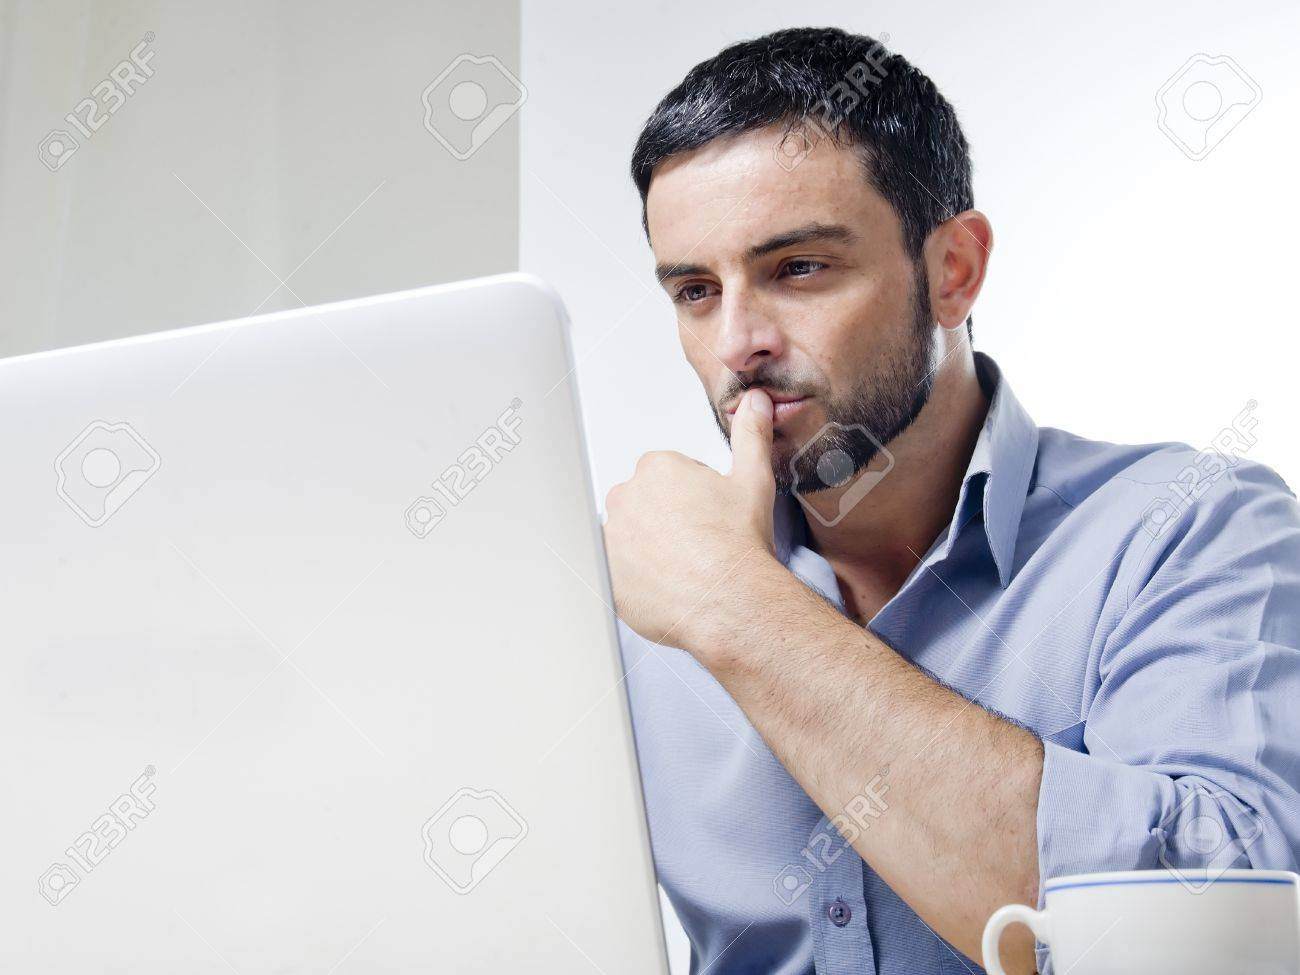 Young Man with Beard Working on Laptop isolated on a White Background Stock Photo - 21648331